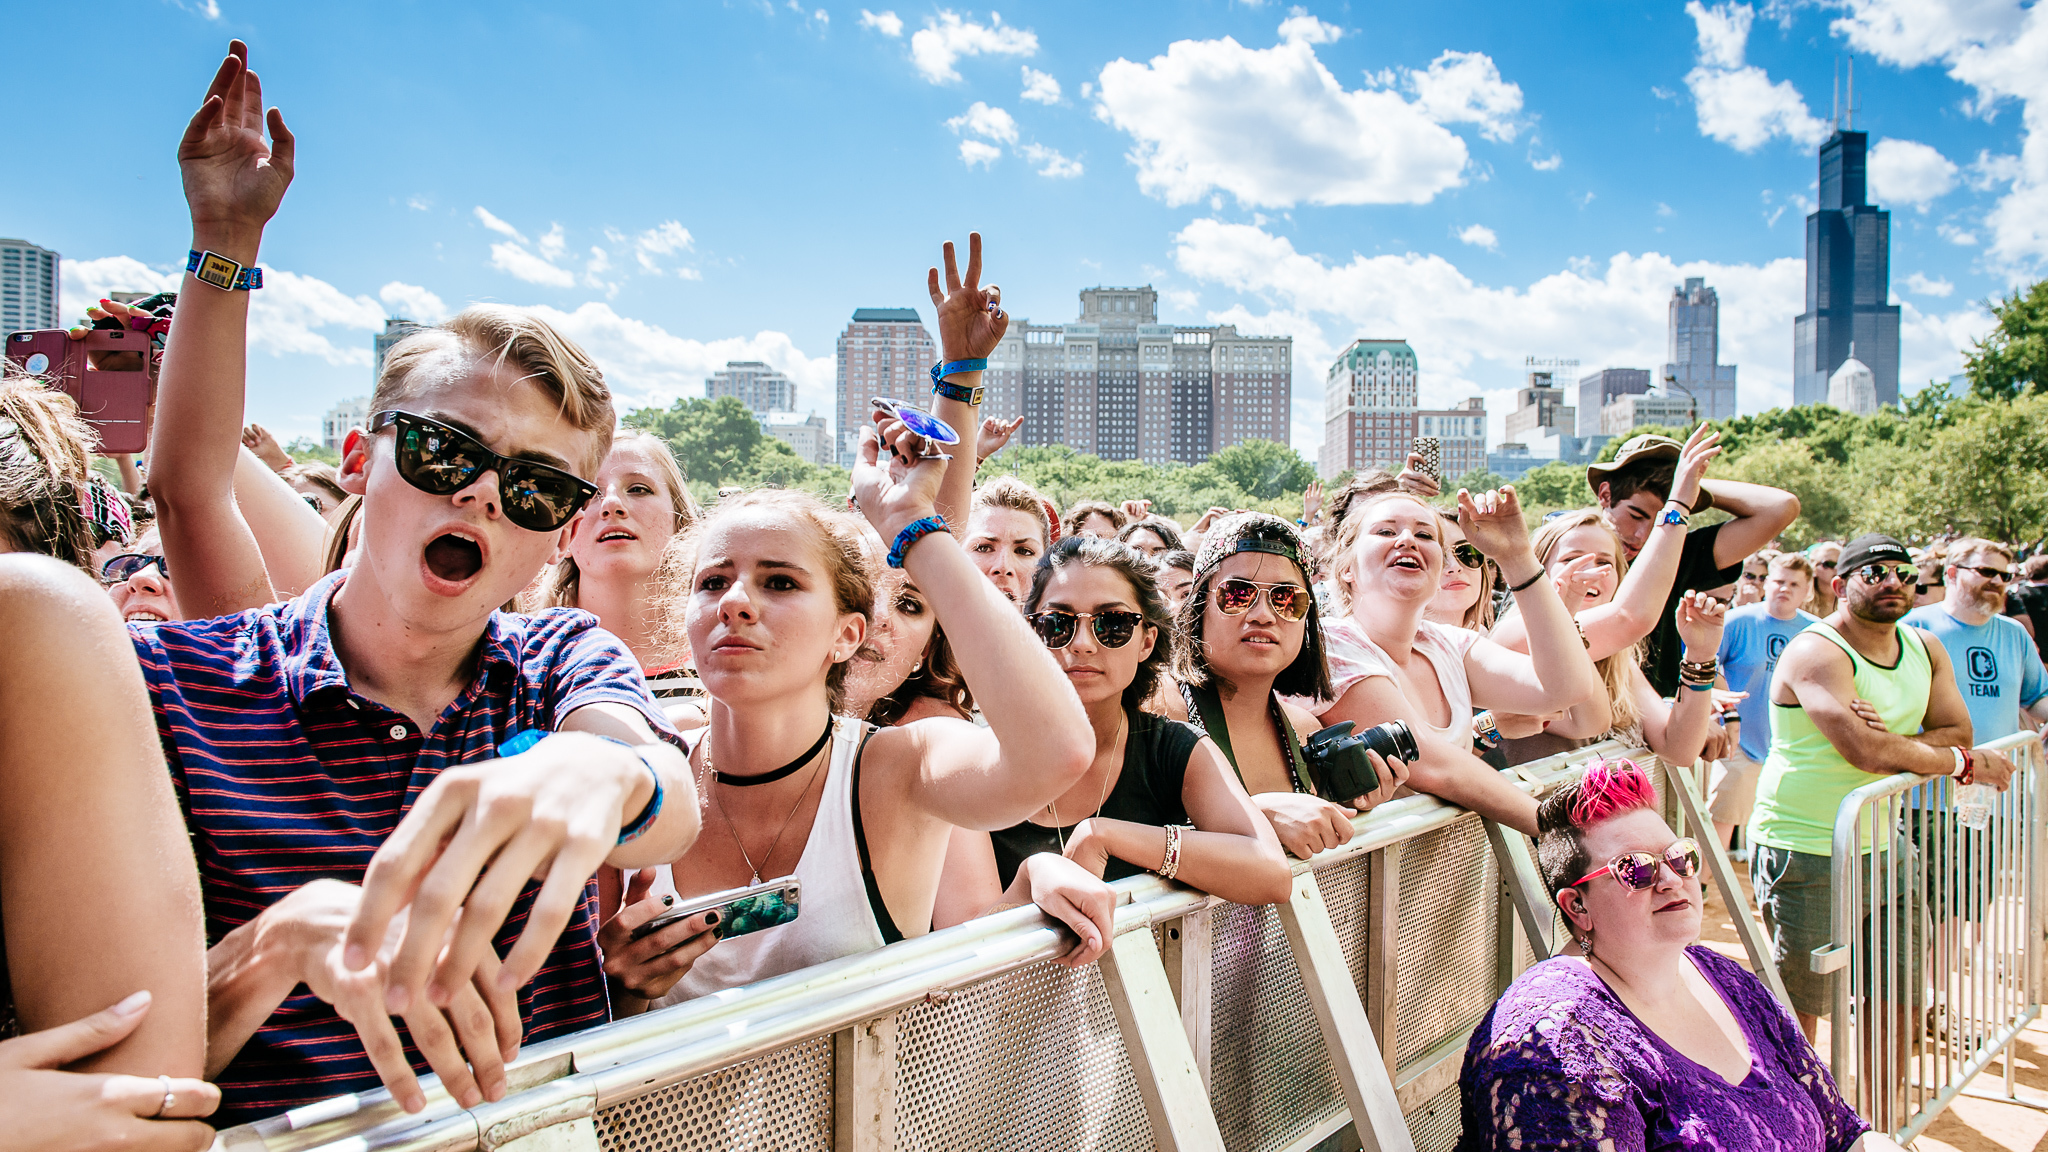 Grant Park was packed with music fans who came downtown for the second day of Lollapalooza on August 1, 2015.